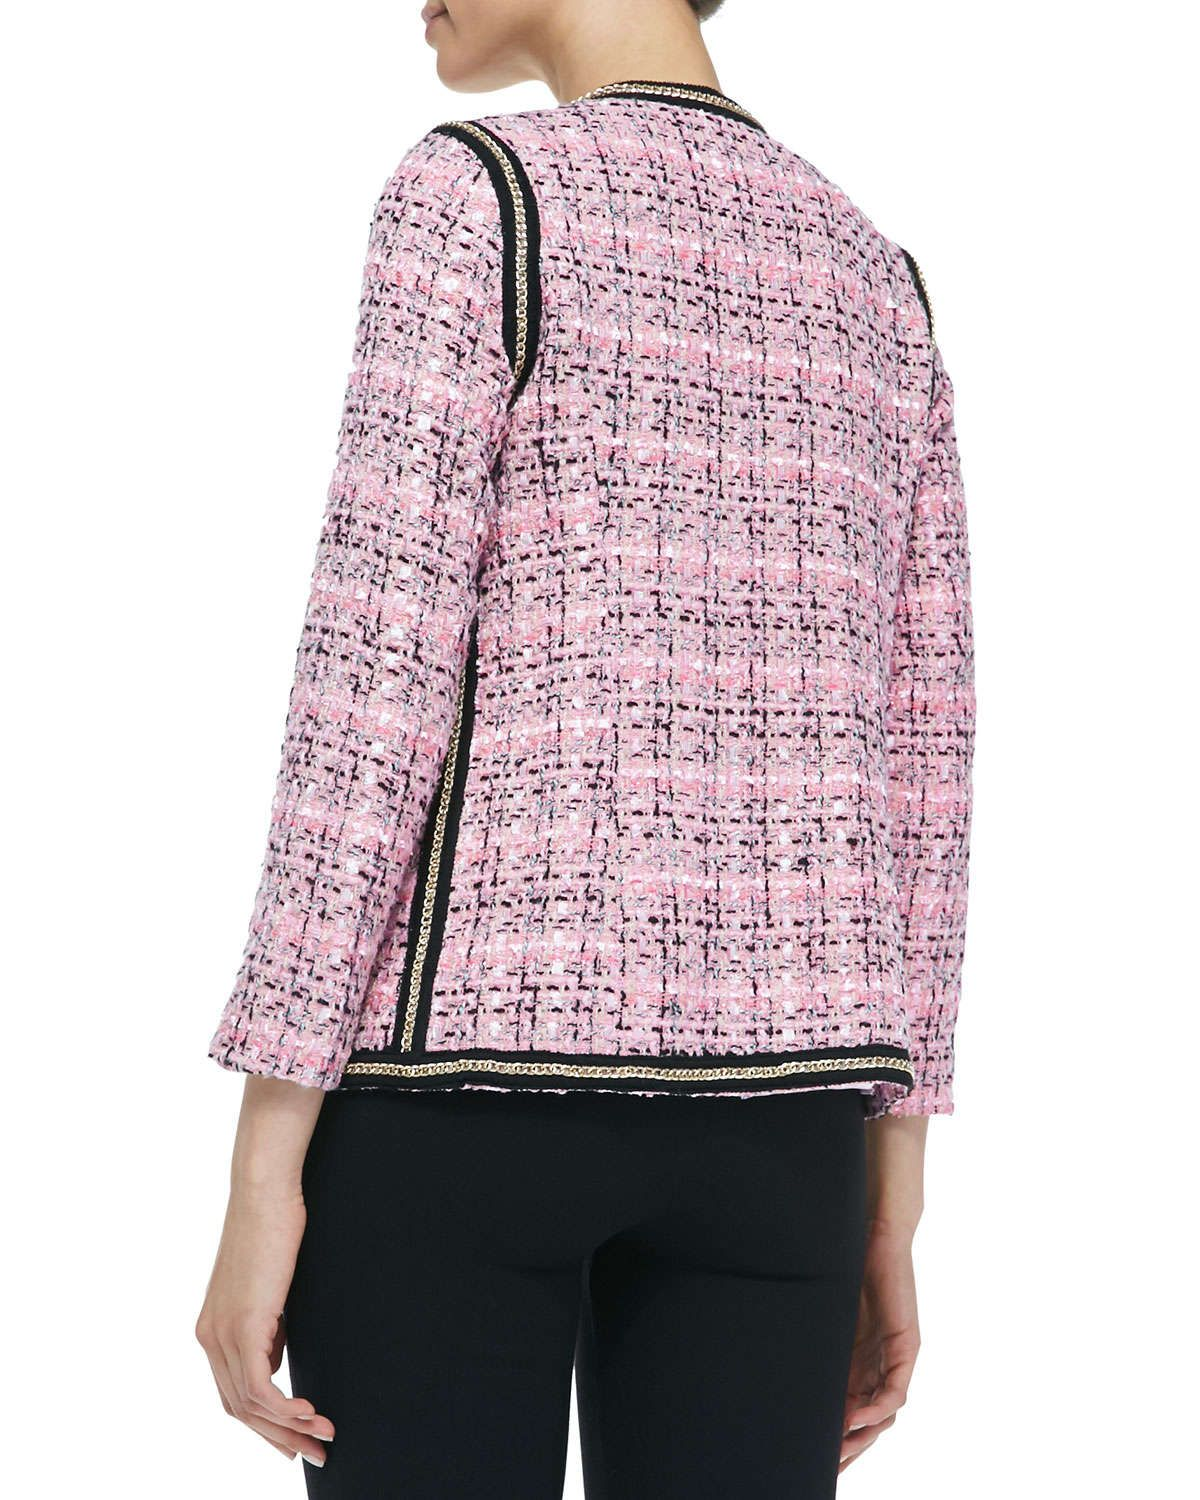 Chain Link-Detail Tweed Jacket, Women's